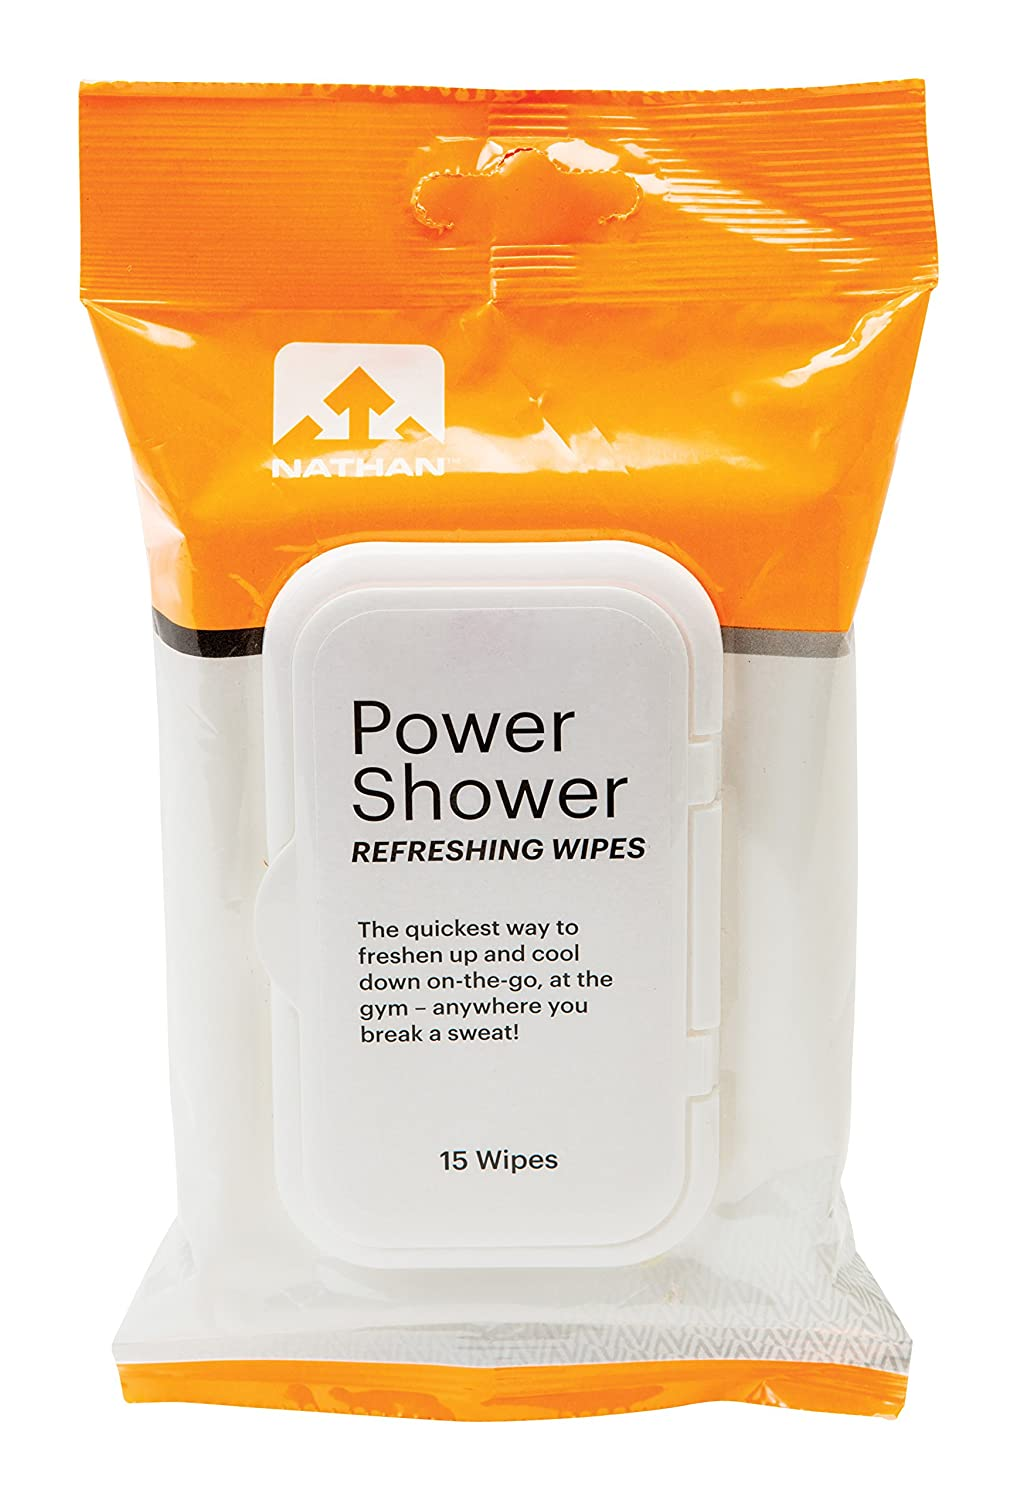 Wipes that make you smell like you just got out of the shower!